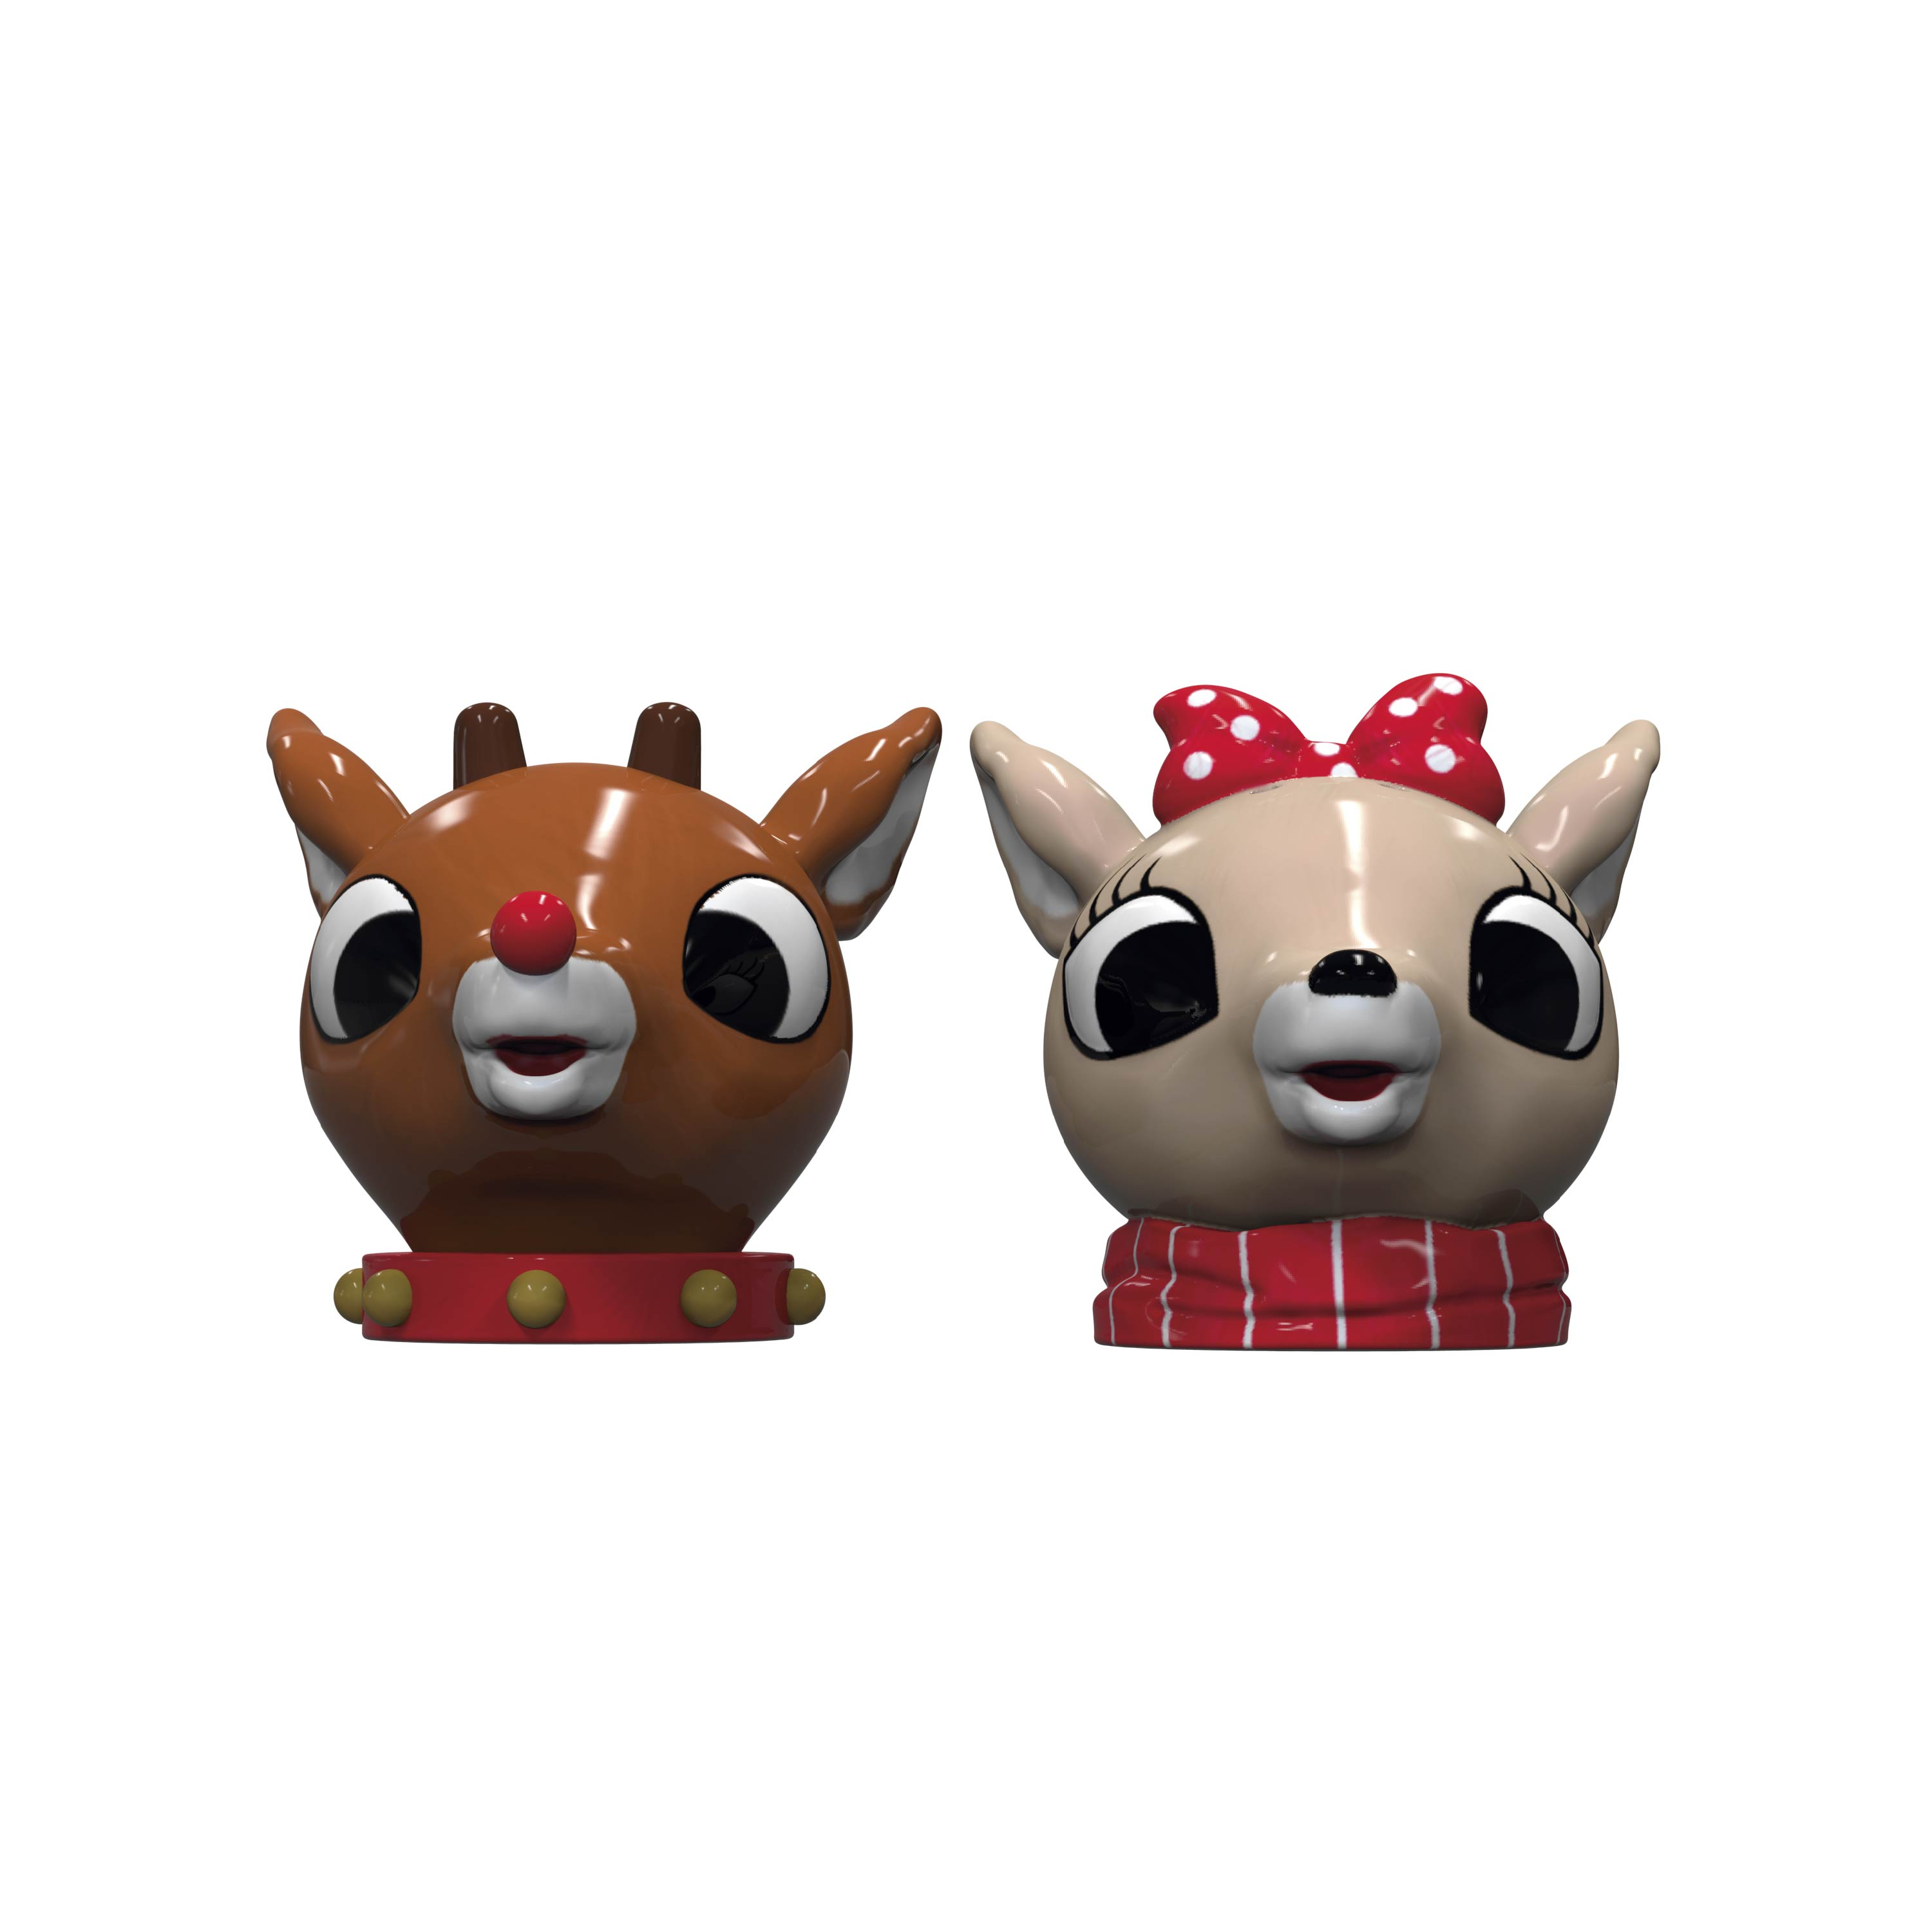 Rudolph the Red-Nosed Reindeer Salt and Pepper Shaker Set, Rudolph & Clarice, 2-piece set slideshow image 1